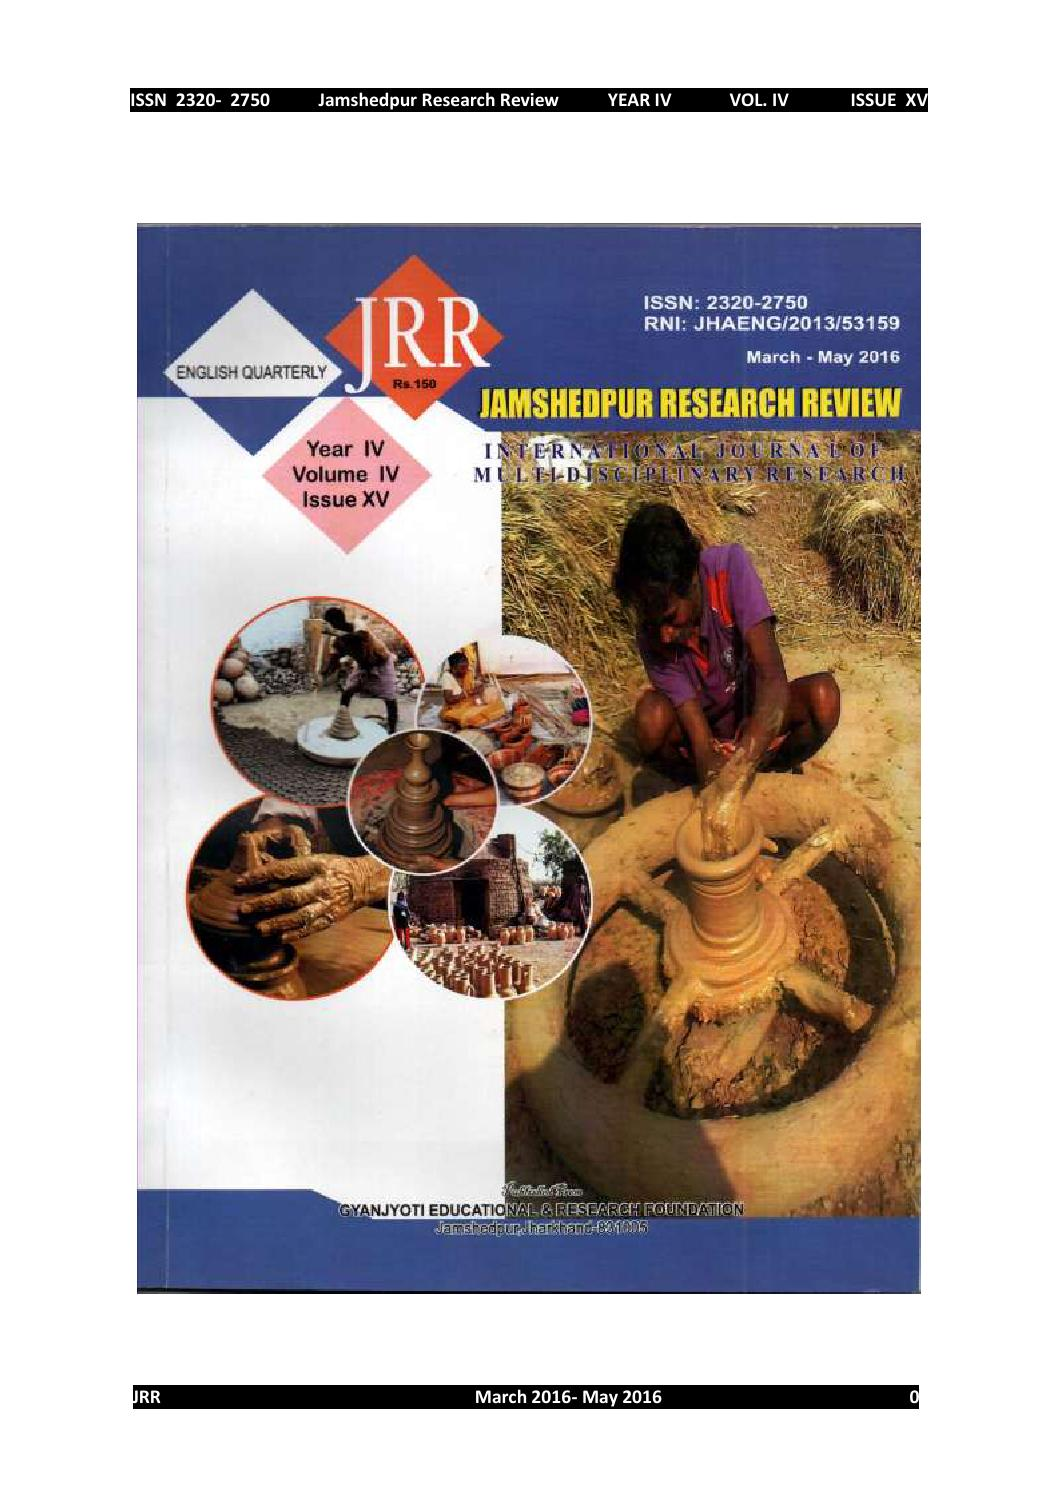 Jamshedpur reseearch review issue 15 by Mithilesh Choubey - issuu